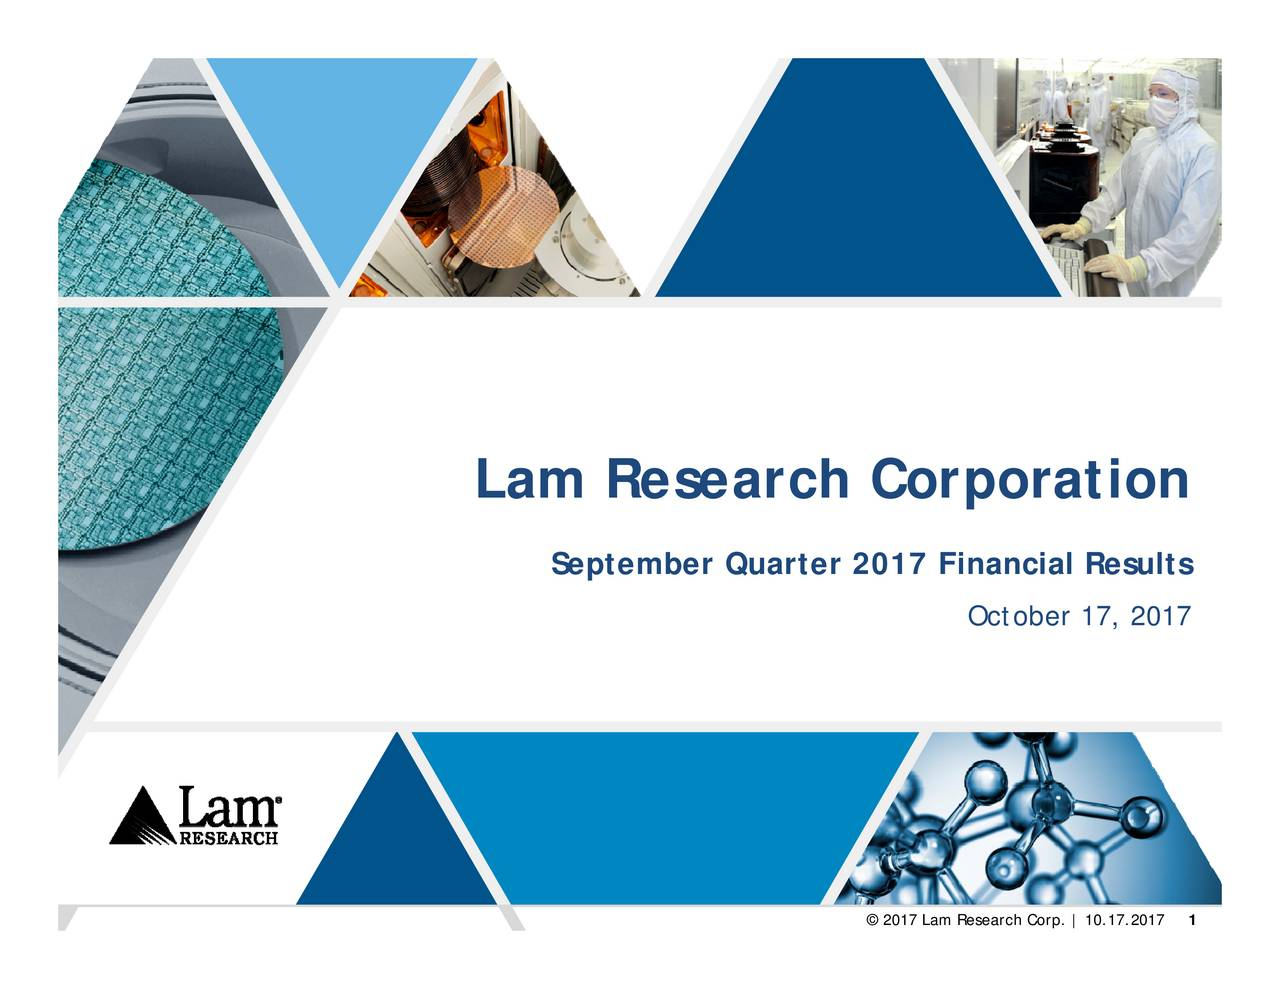 October 17, 2017 © 2017 Lam Research Corp. | 10.17.2017 September Quarter 2017 Financial Results Lam Research Corporation